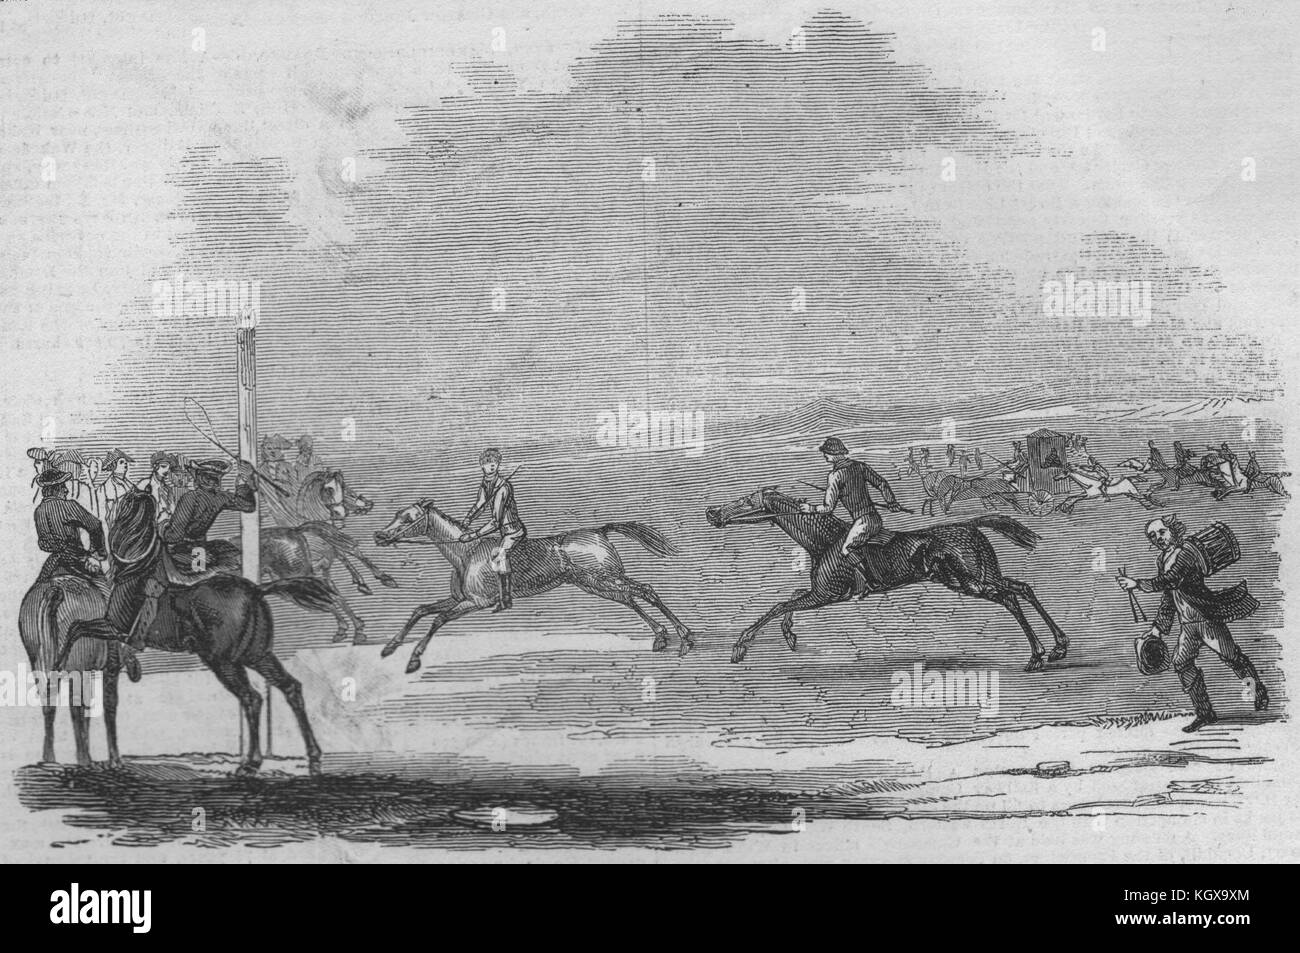 Newmarket in the olden time. Suffolk 1845. The Illustrated London News - Stock Image